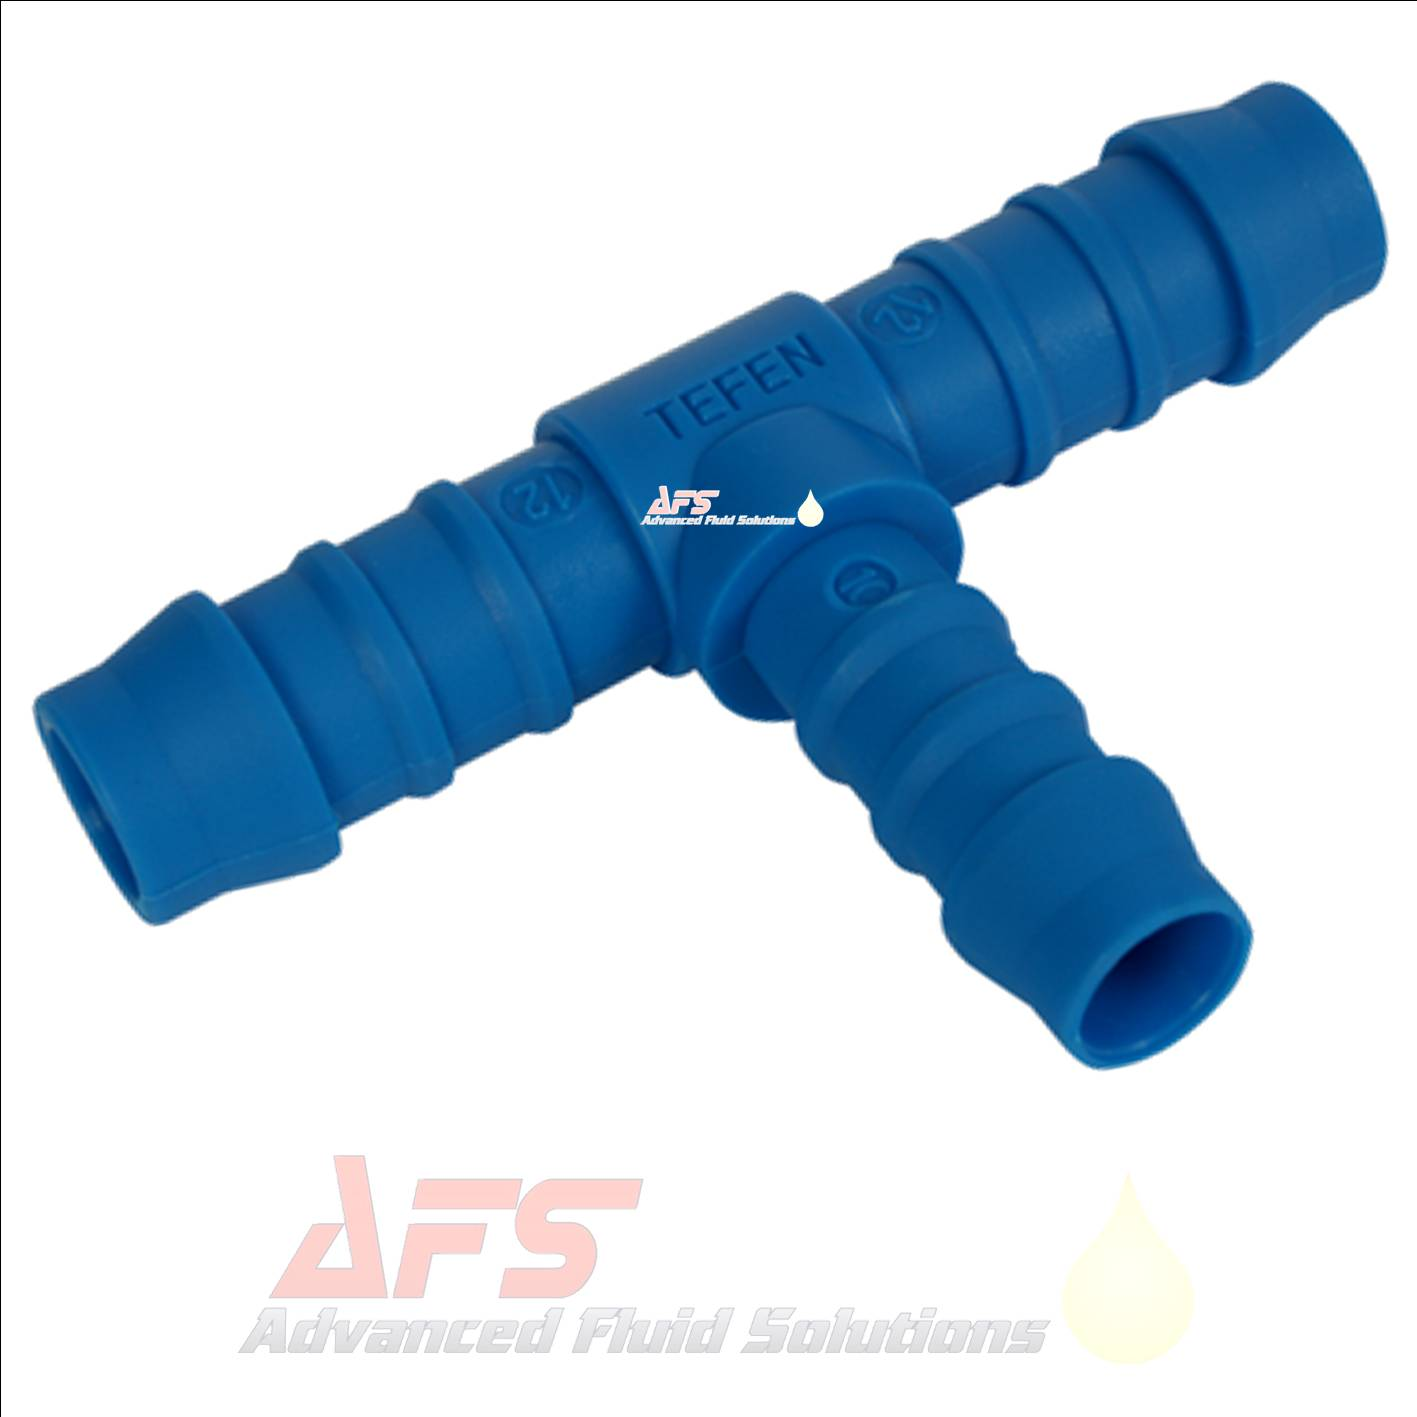 8mm X 6mm Reducing T Piece Hose Joiner Tefen Nylon Blue